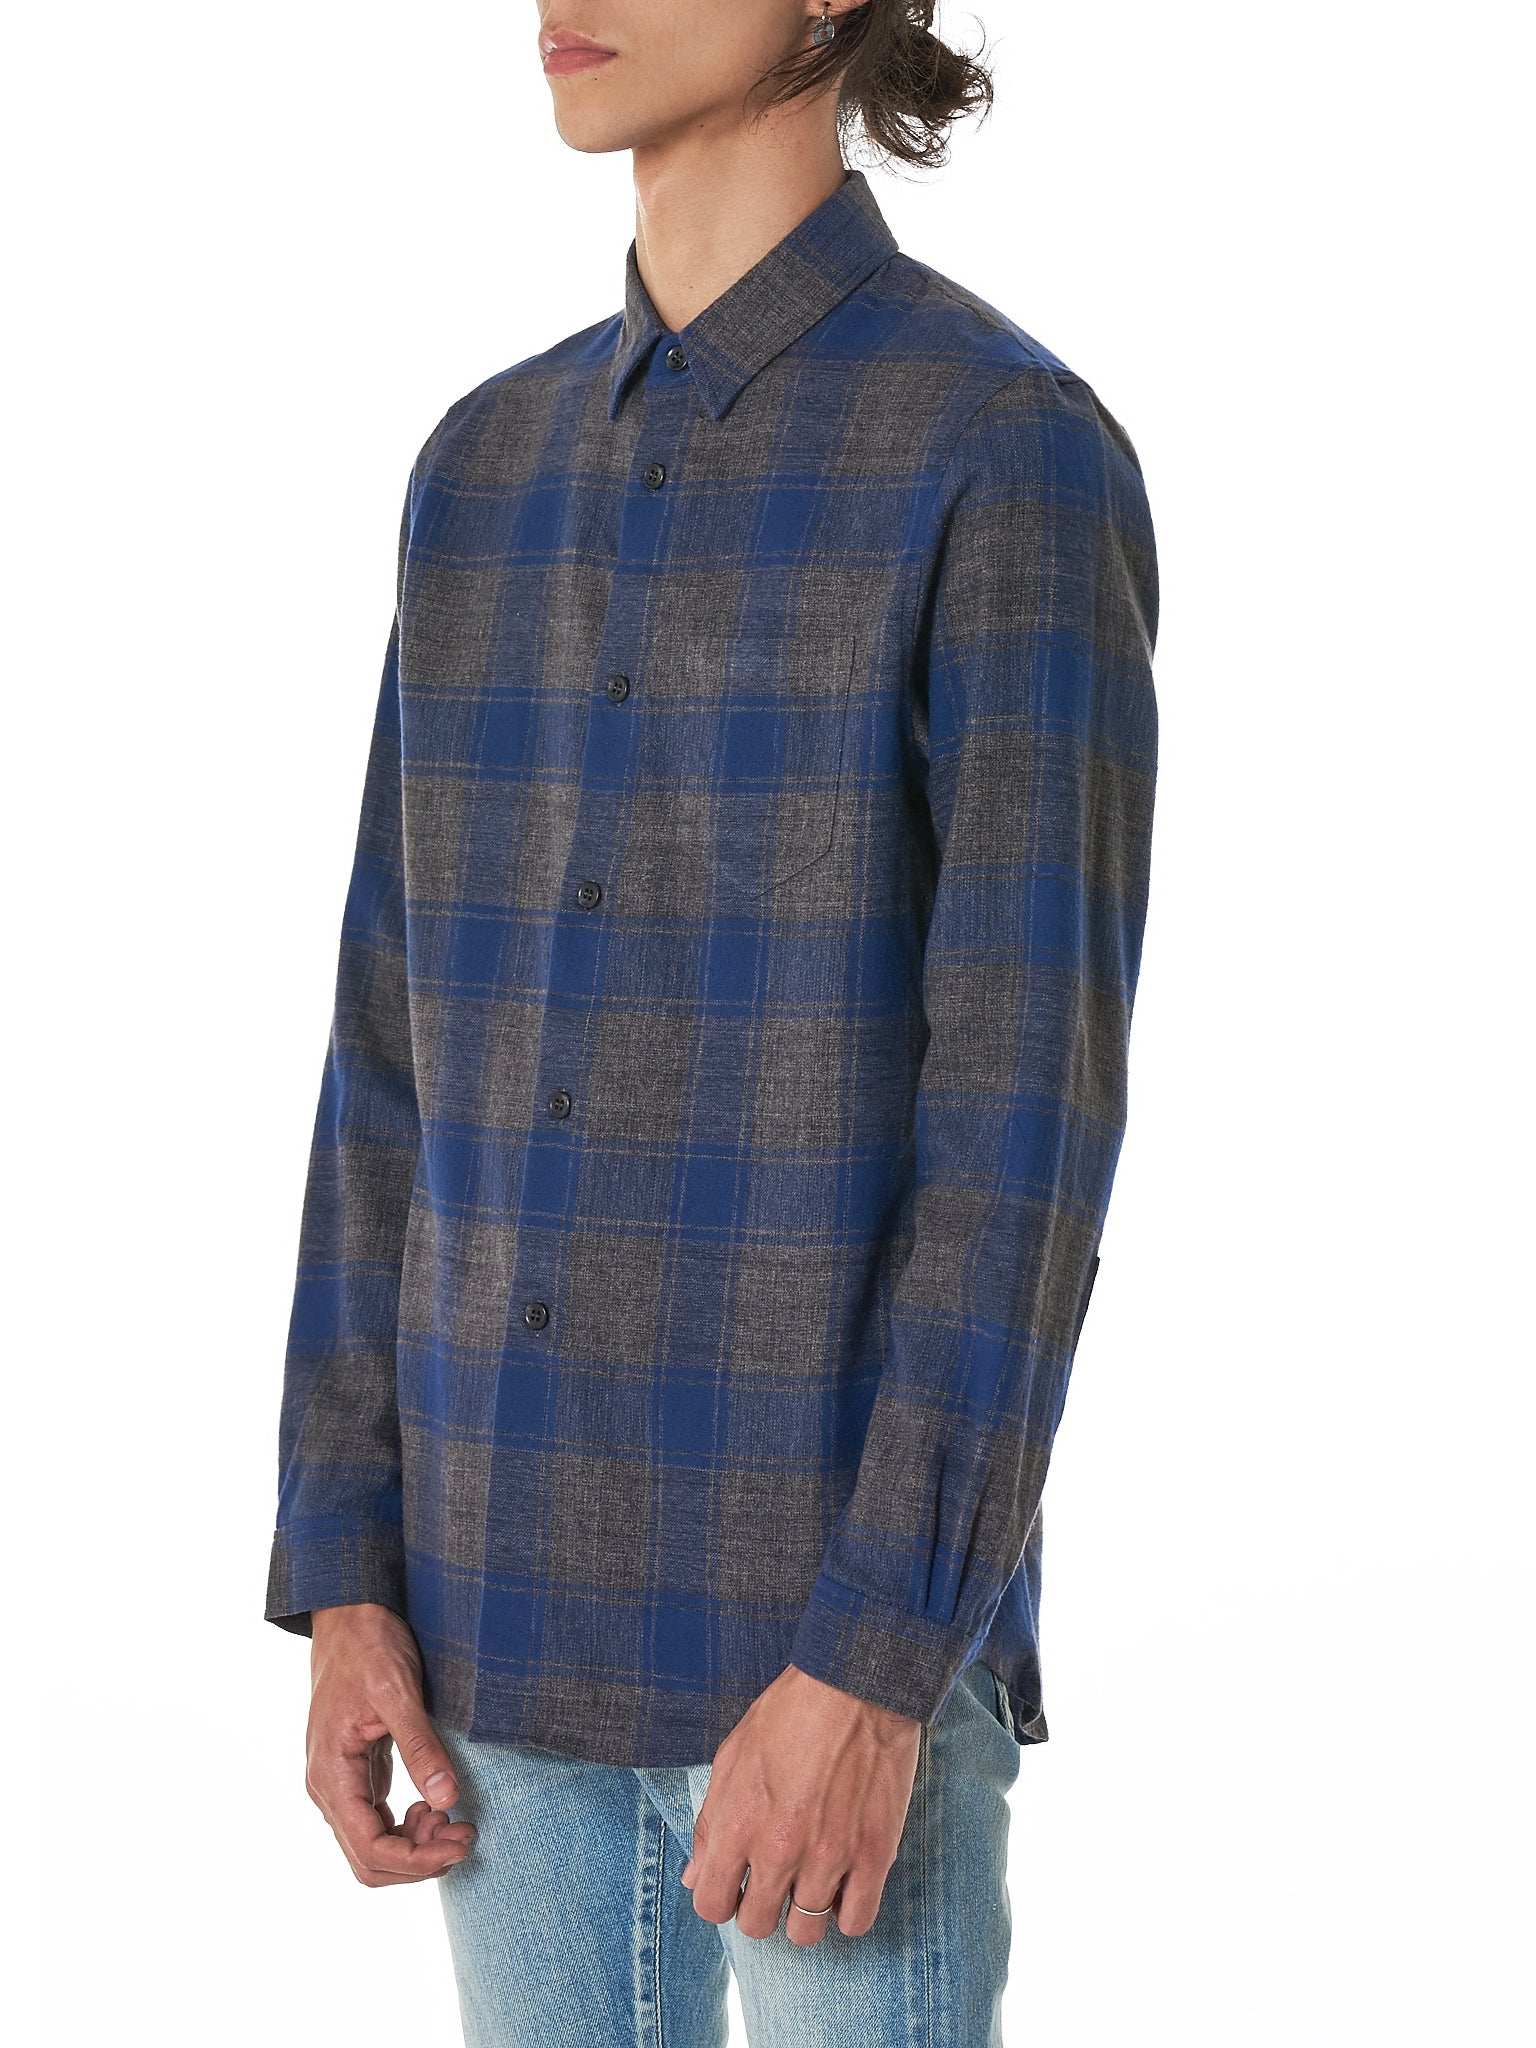 John Elliott Flannel - Hlorenzo Side